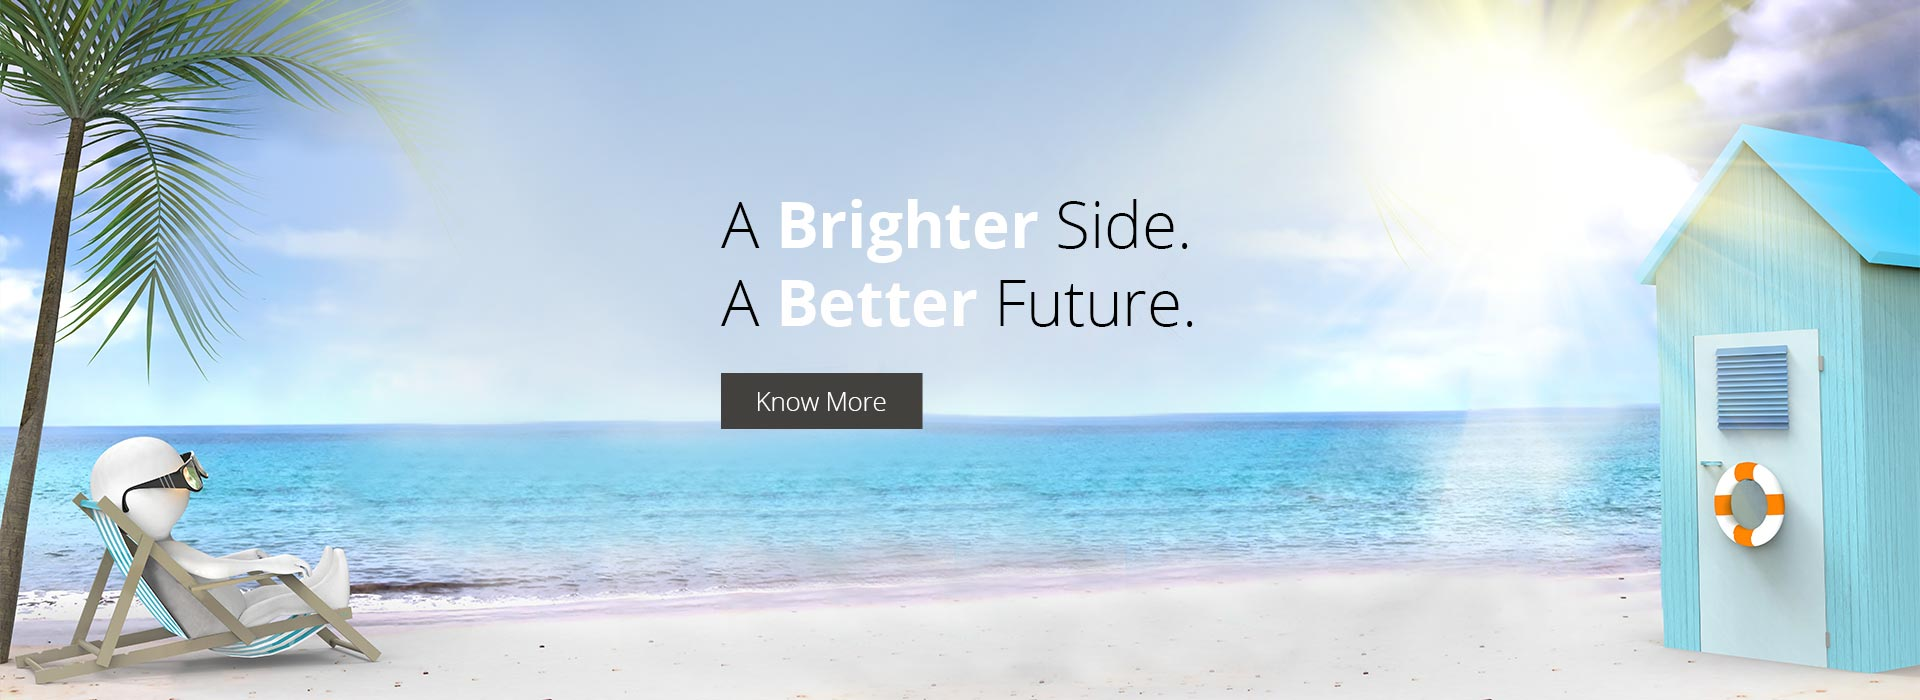 A Brighter Side. A Better Future